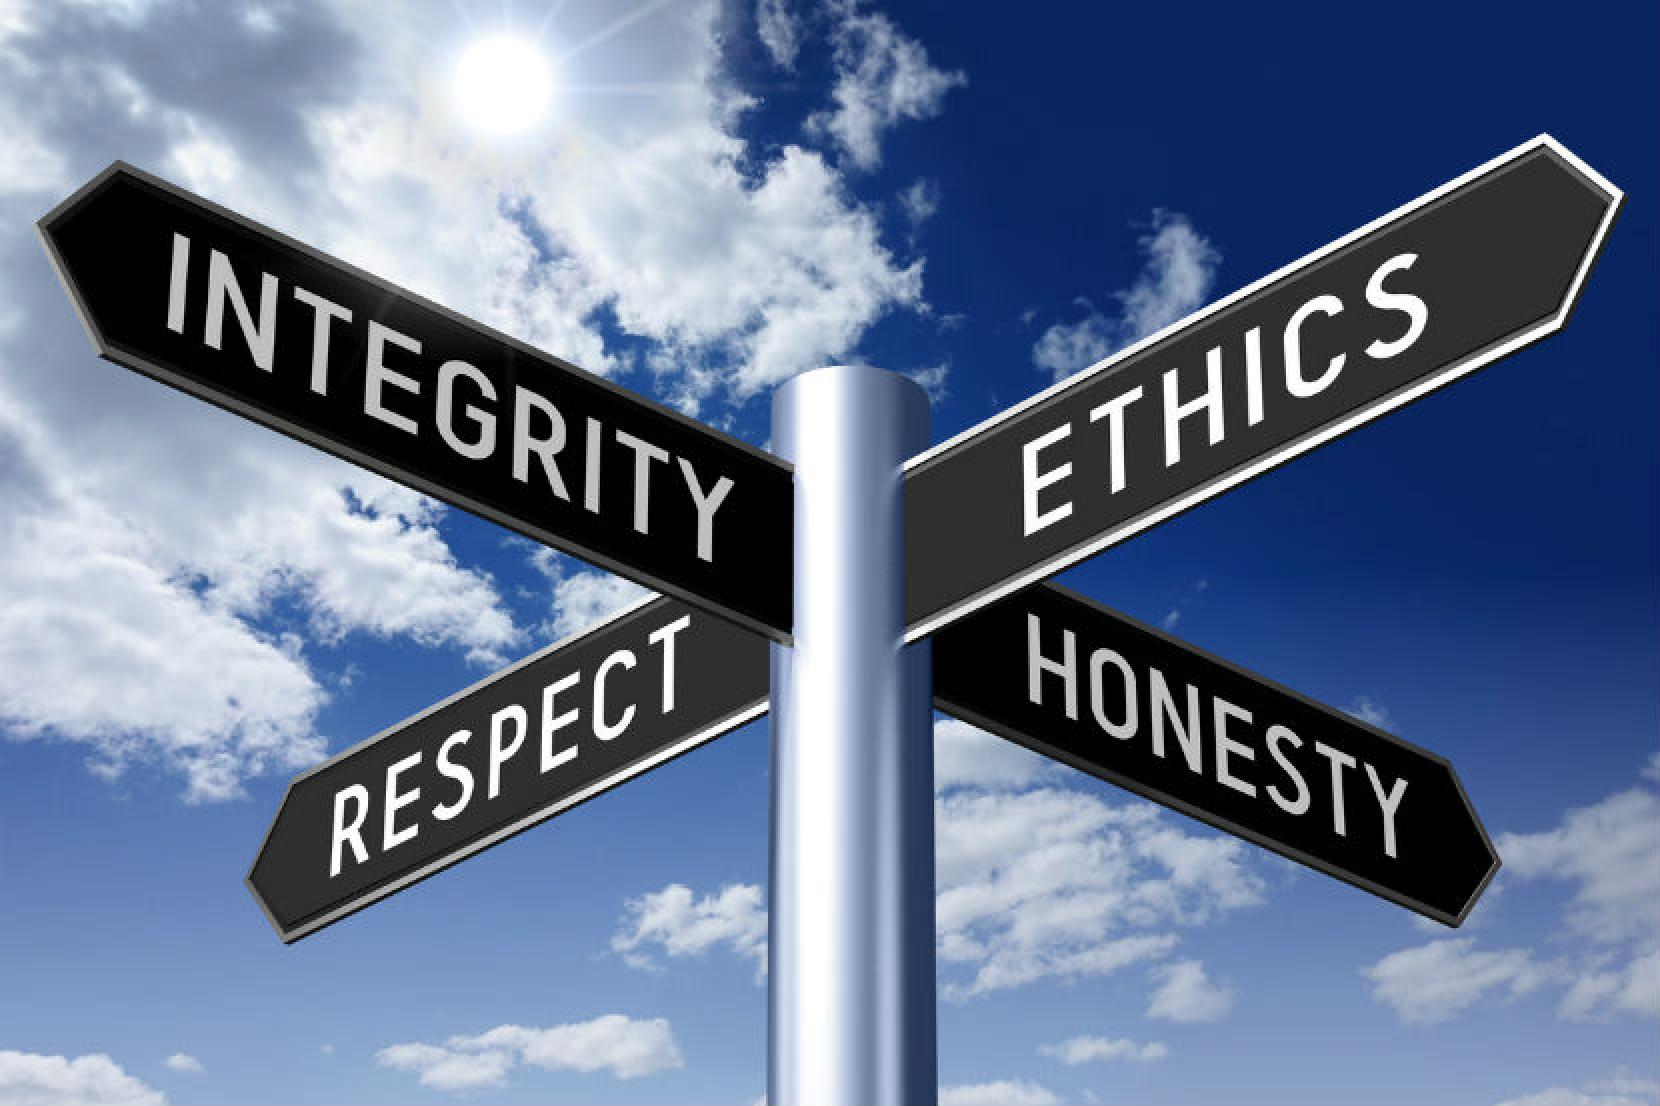 Ethics: An unexamined life is not worth living